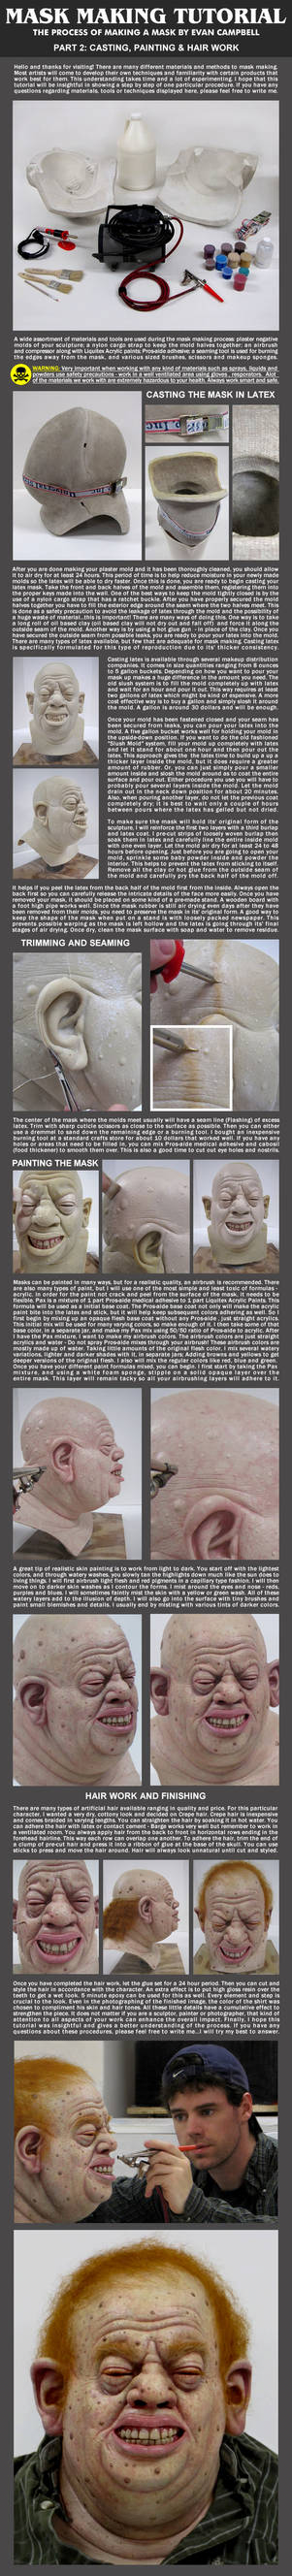 Mask Making Tutorial: Part 2